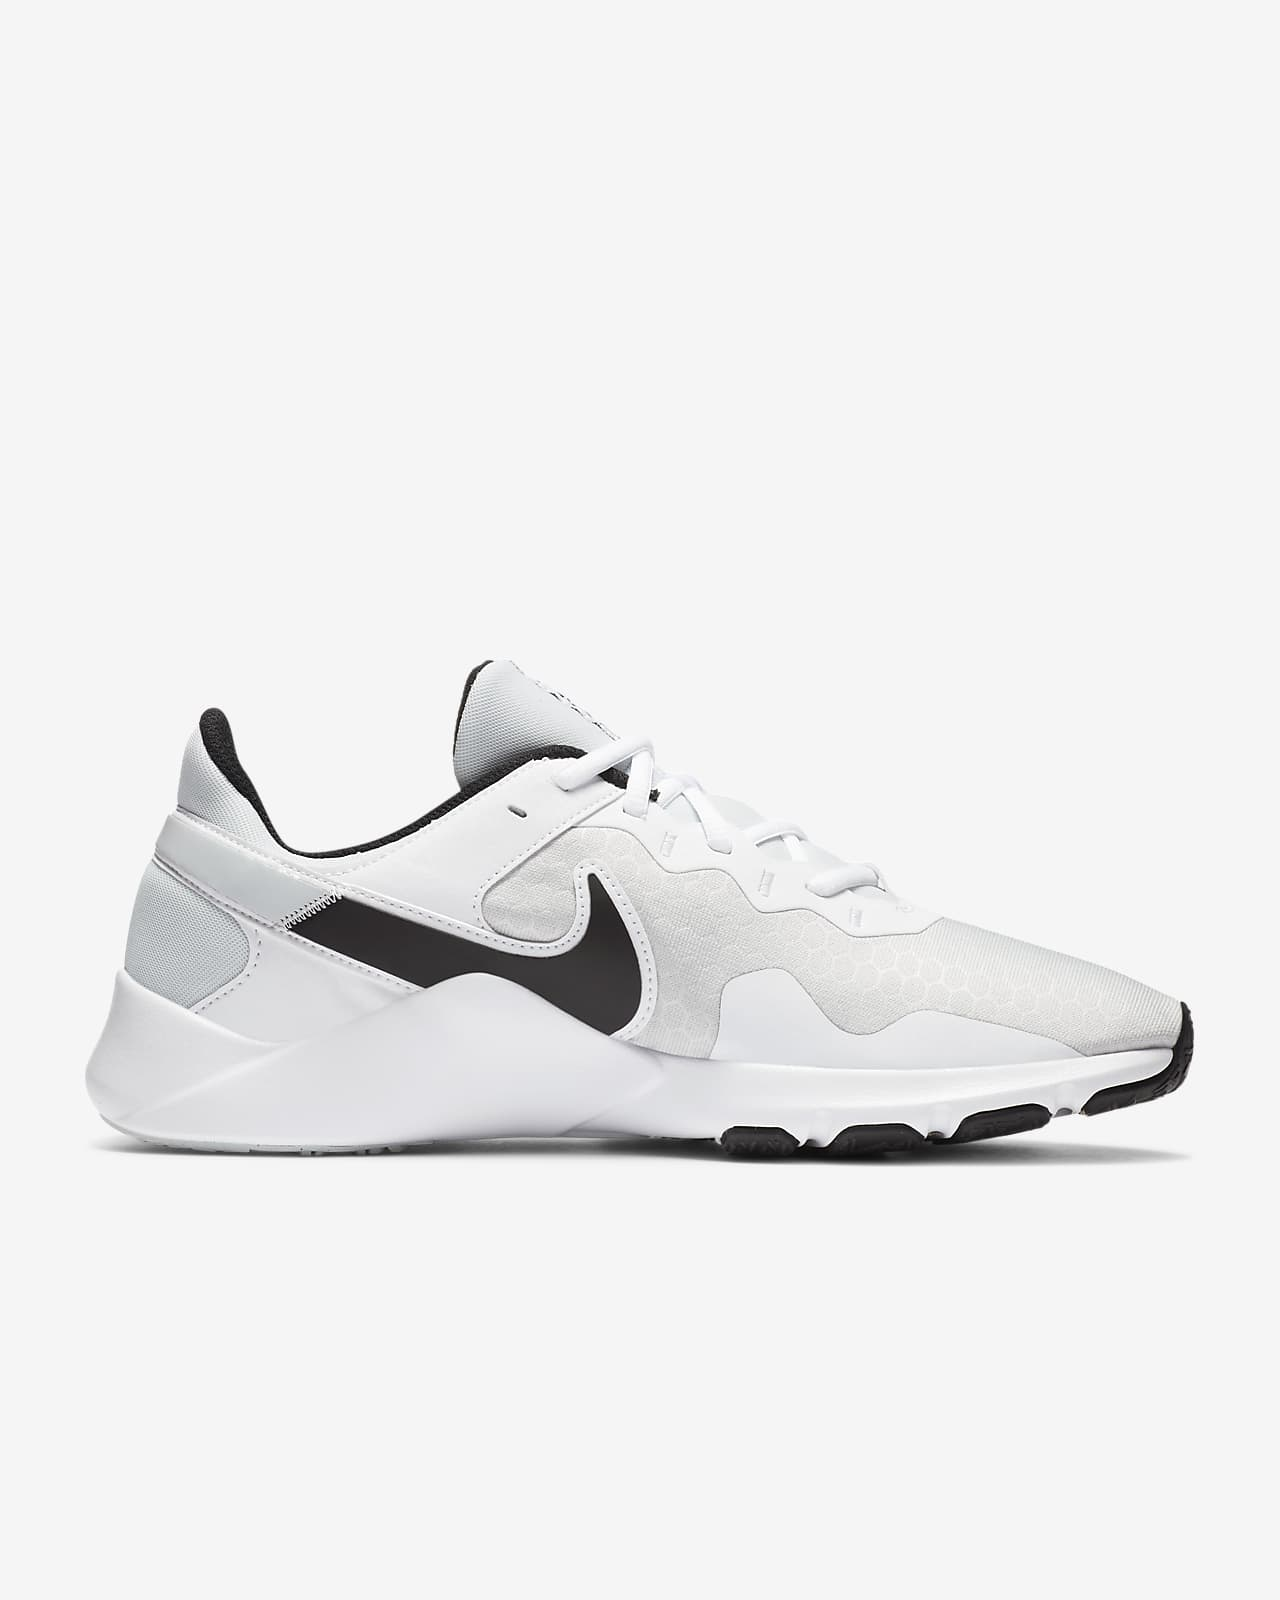 NIKE Кроссовки мужские LEGEND ESSENTIAL 2, white, black. Фото N3